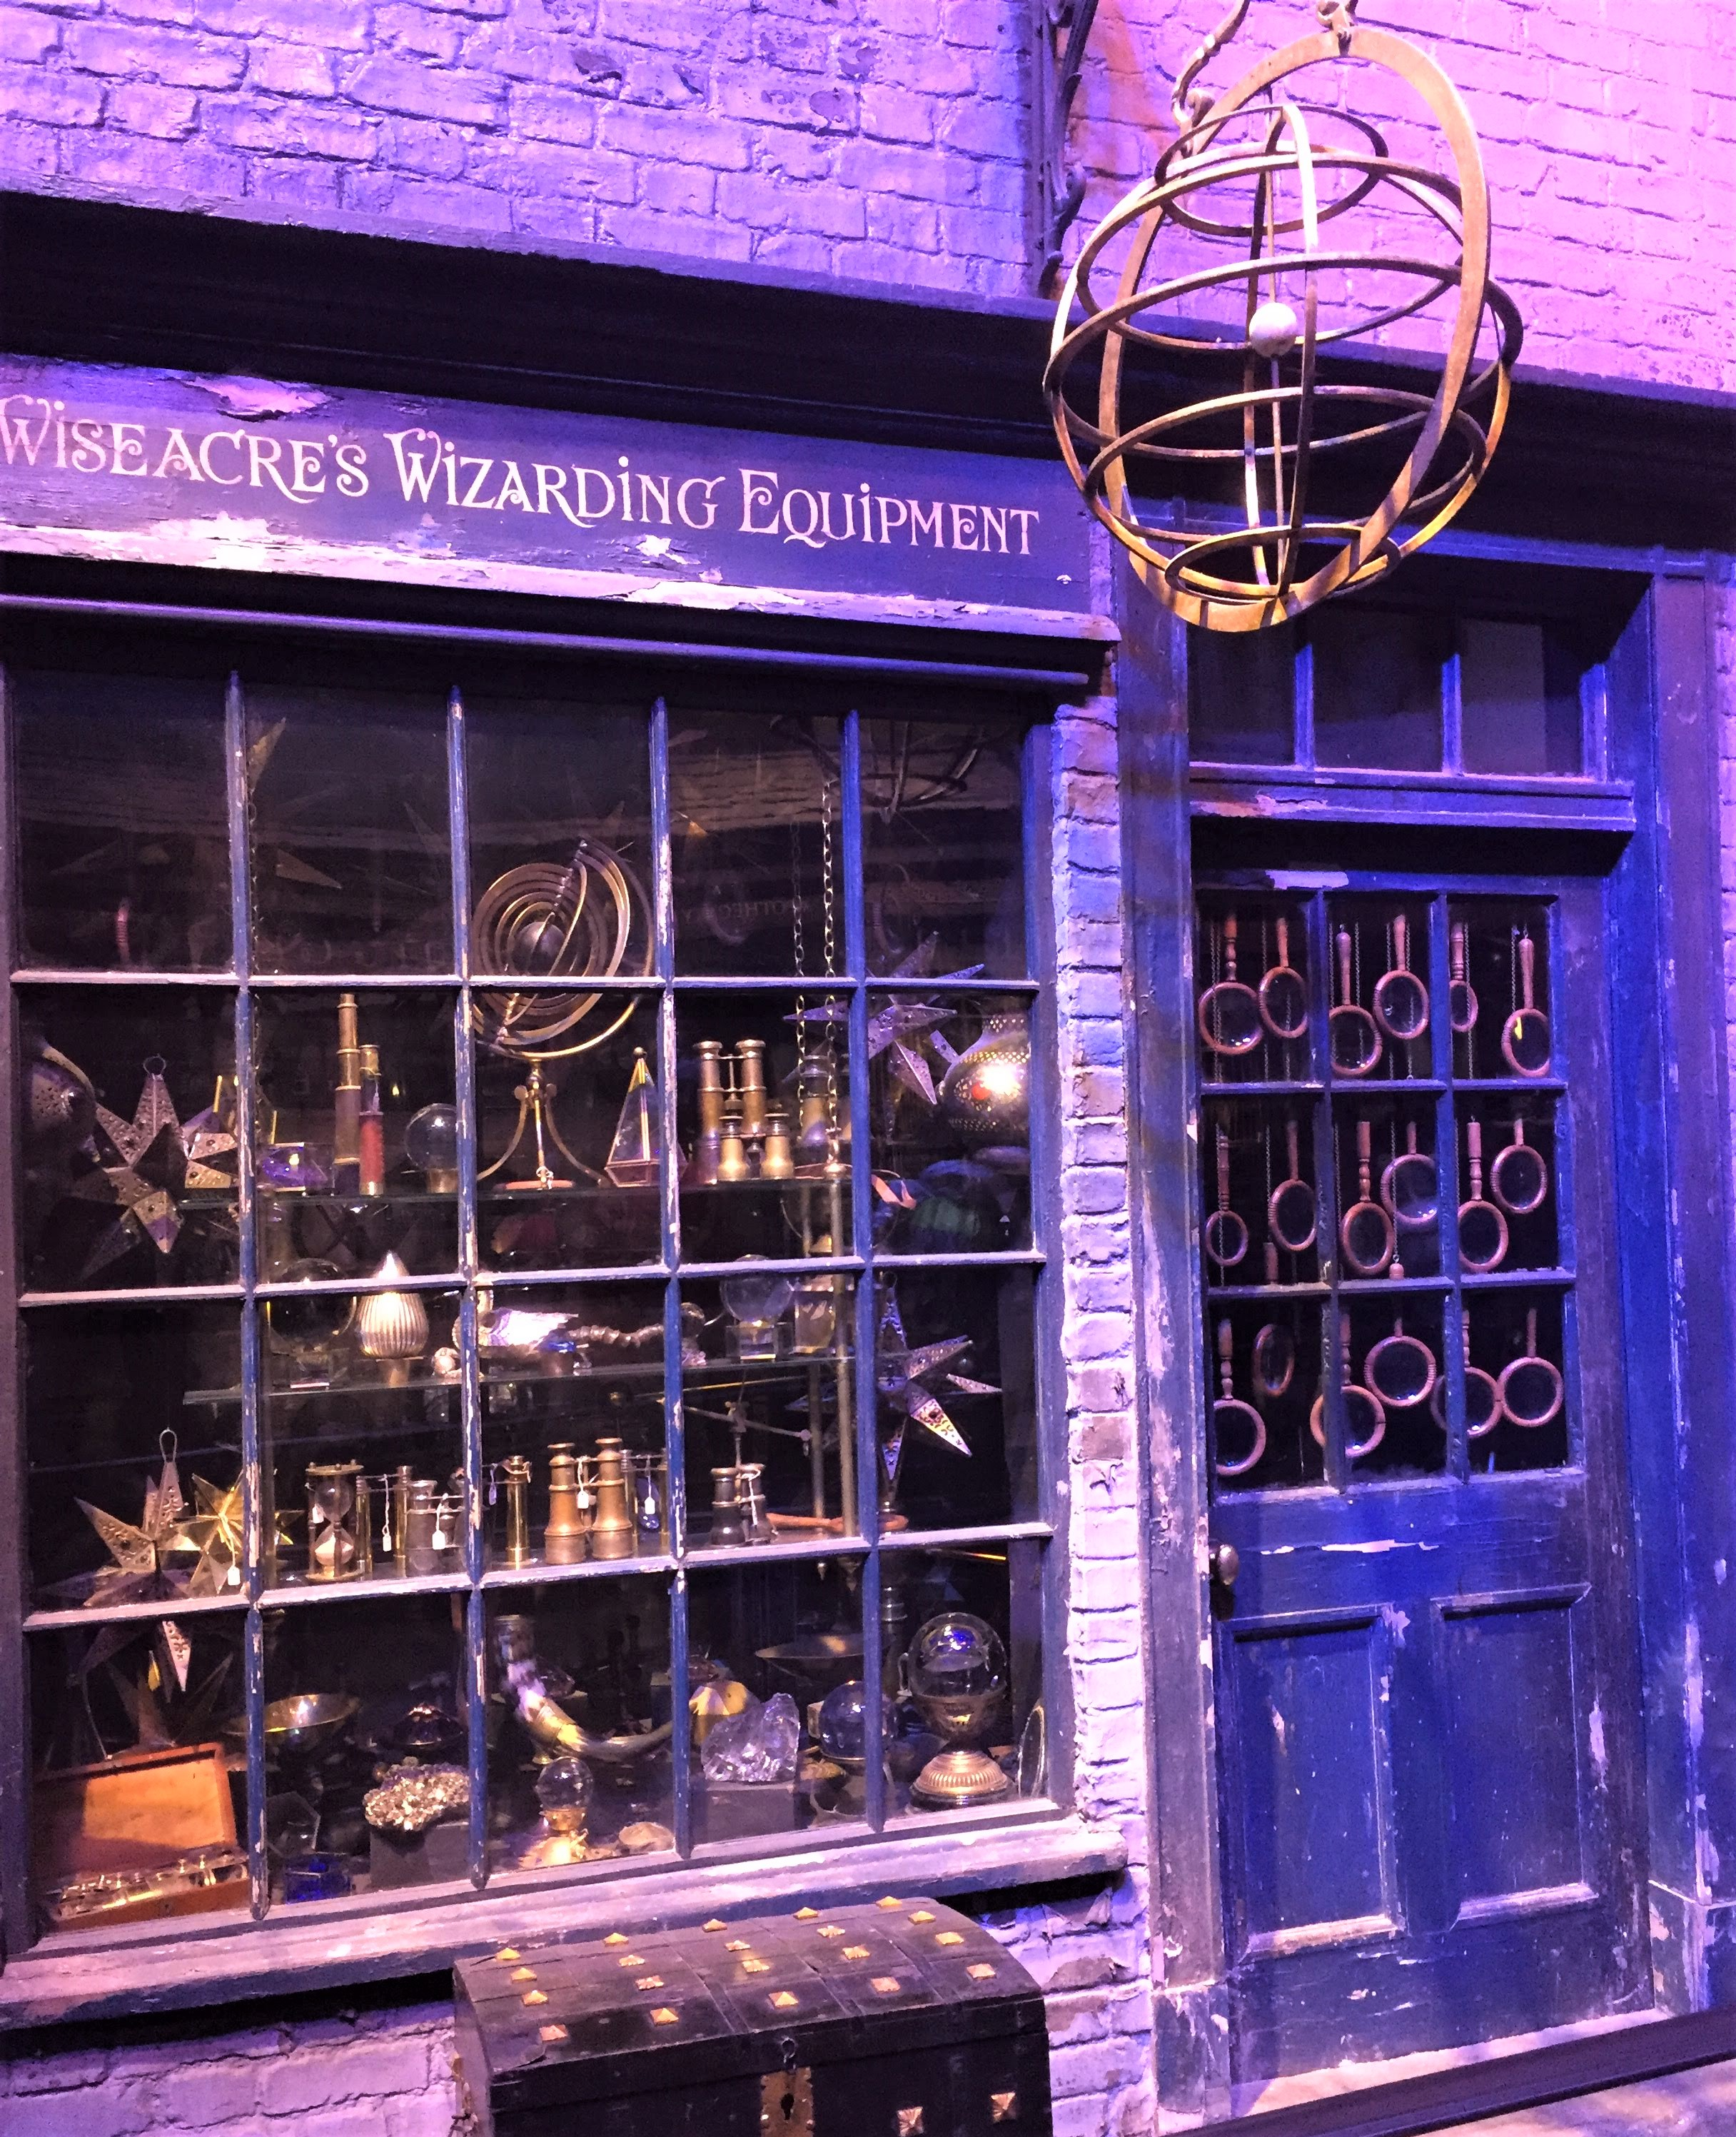 Diagon Alley storefront at the Harry Potter Studio Tour in London